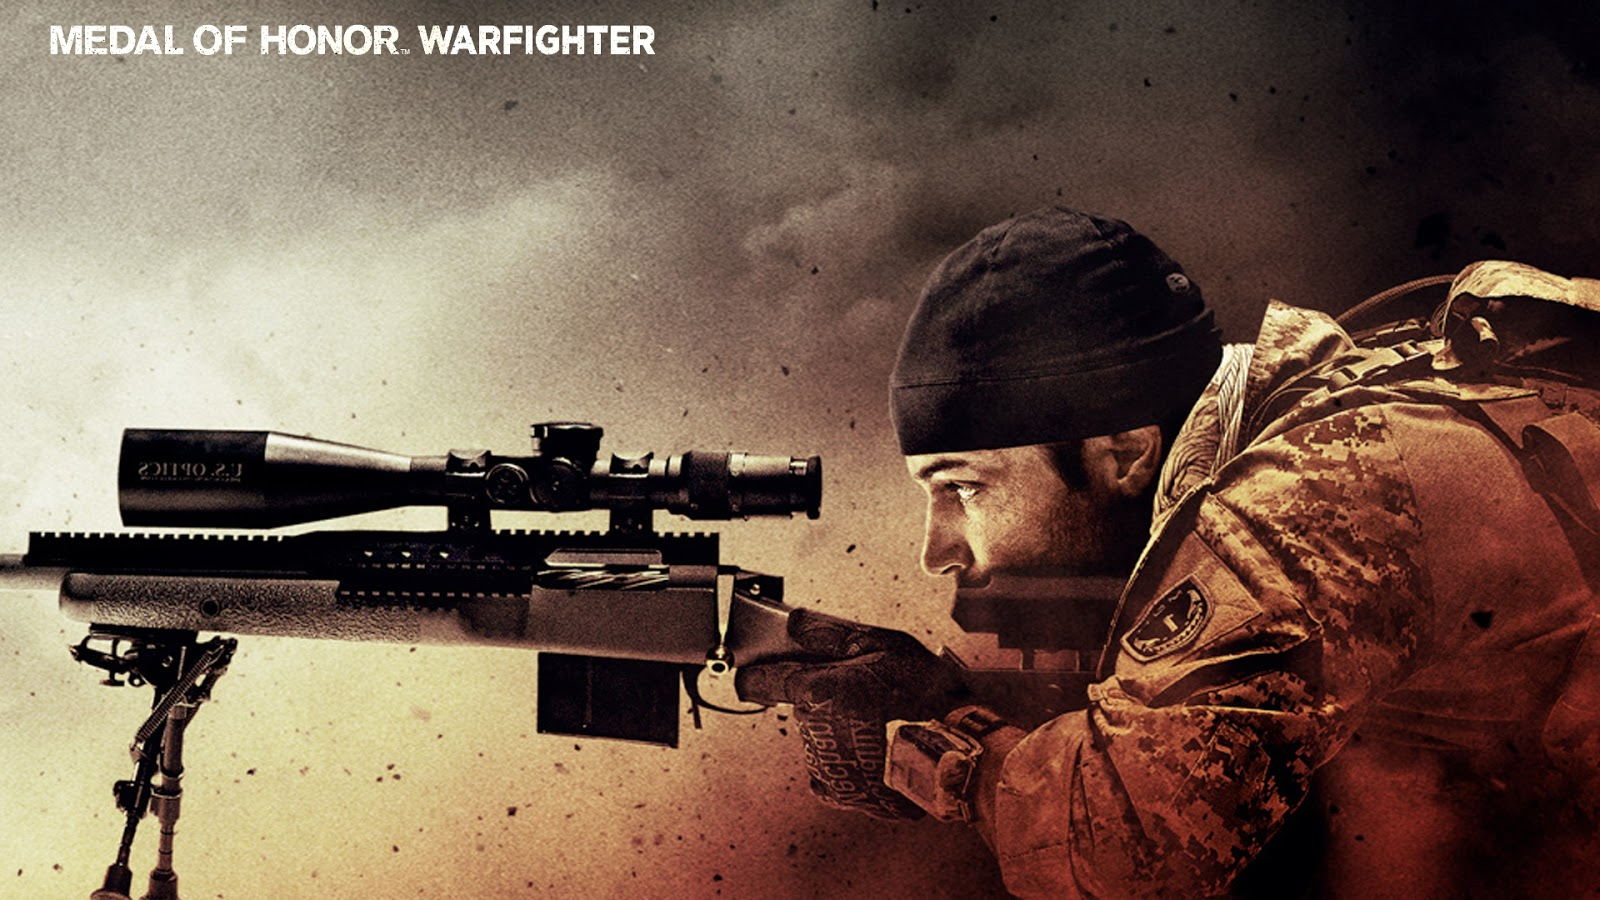 HD WALLPAPERS: Medal Of Honor Warfighter Hd wallpapers